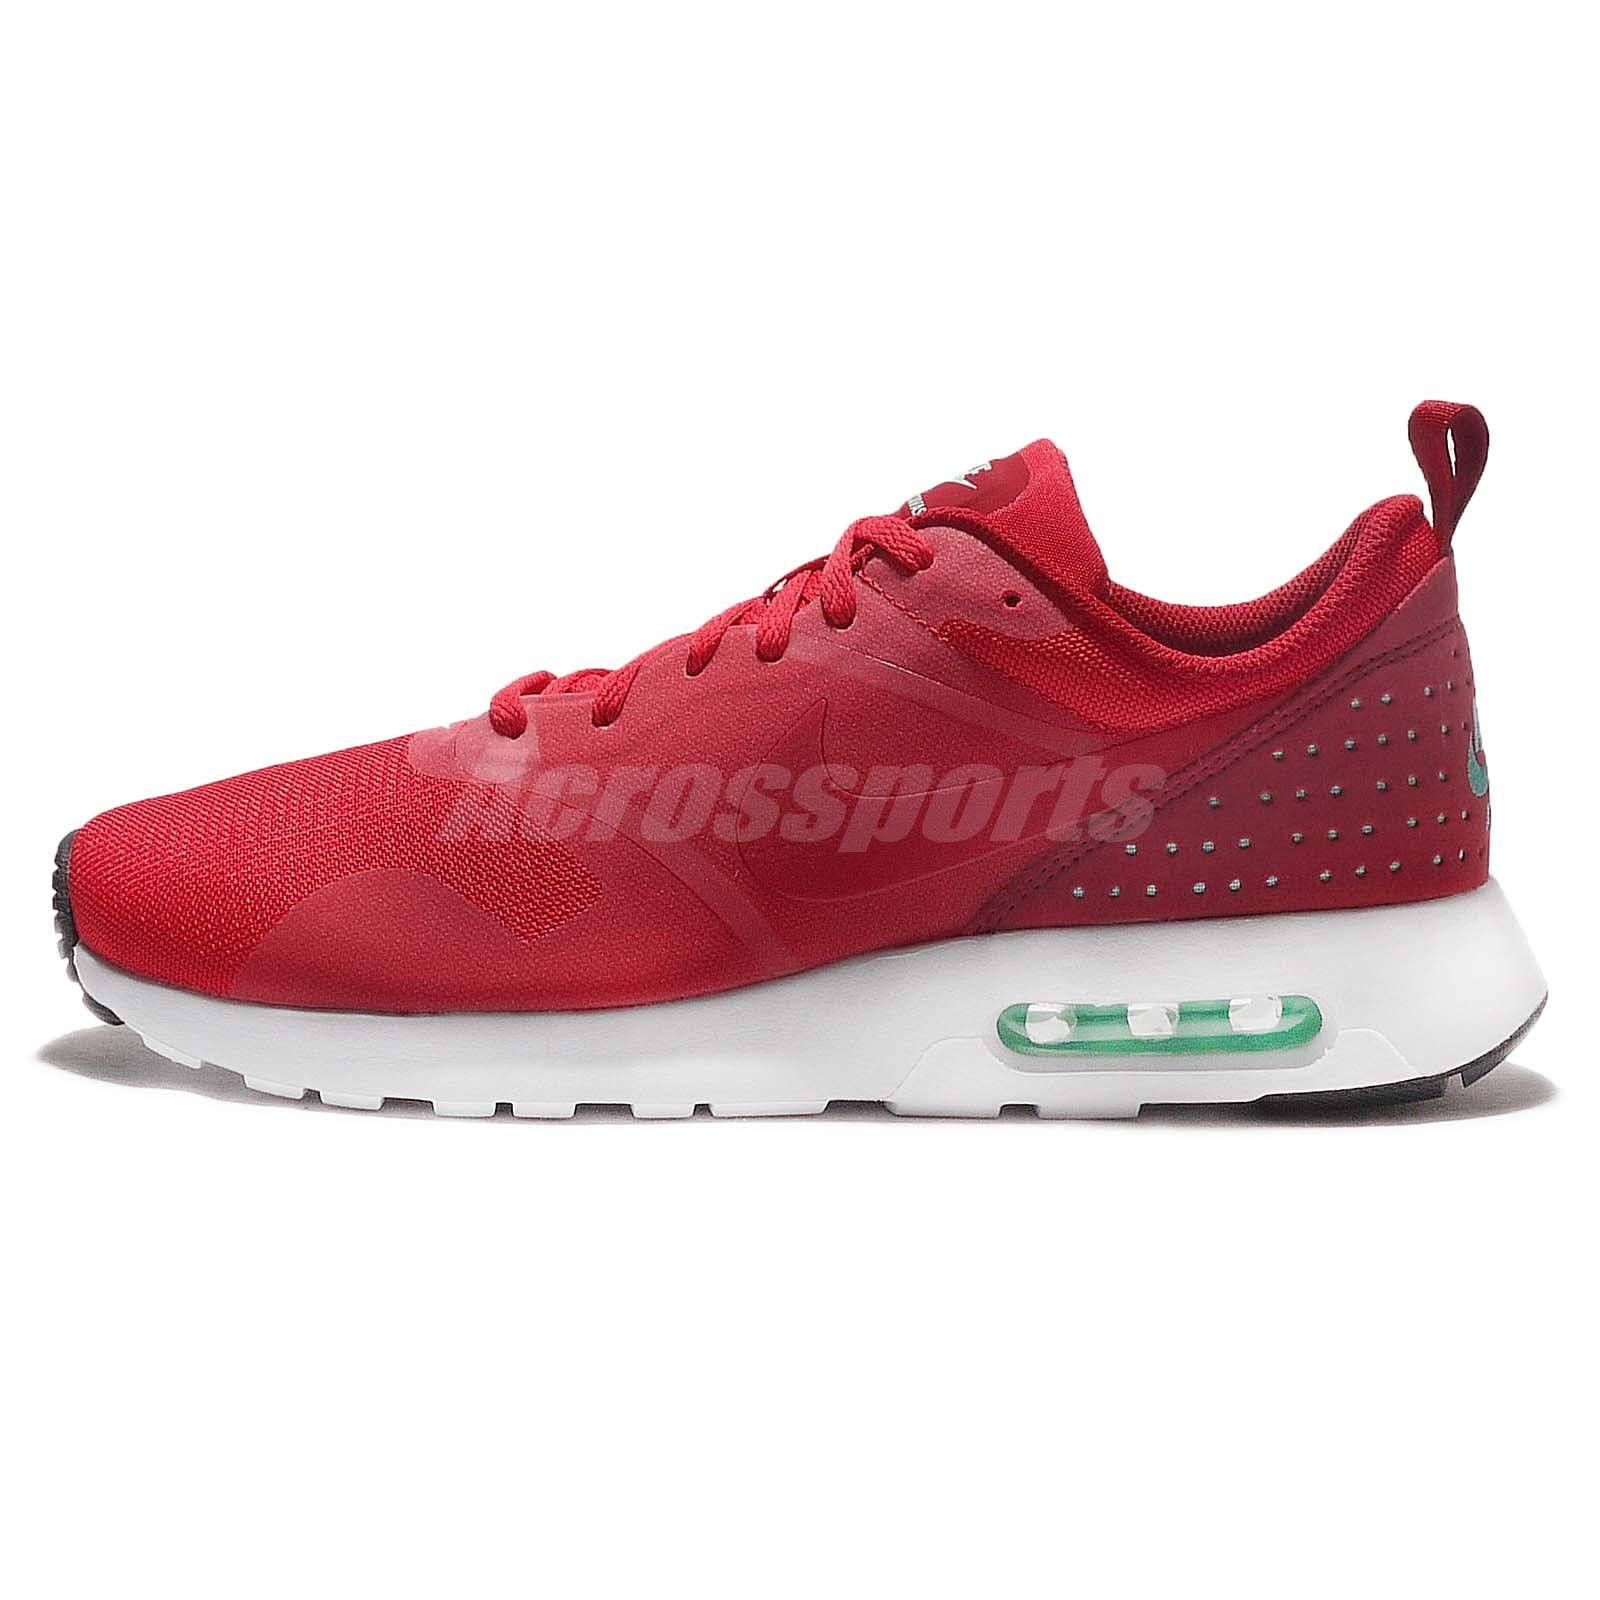 a80ac3904fcd68 Nike Air Max Tavas Action Red White Mens Running Shoes Sneakers 705149 603